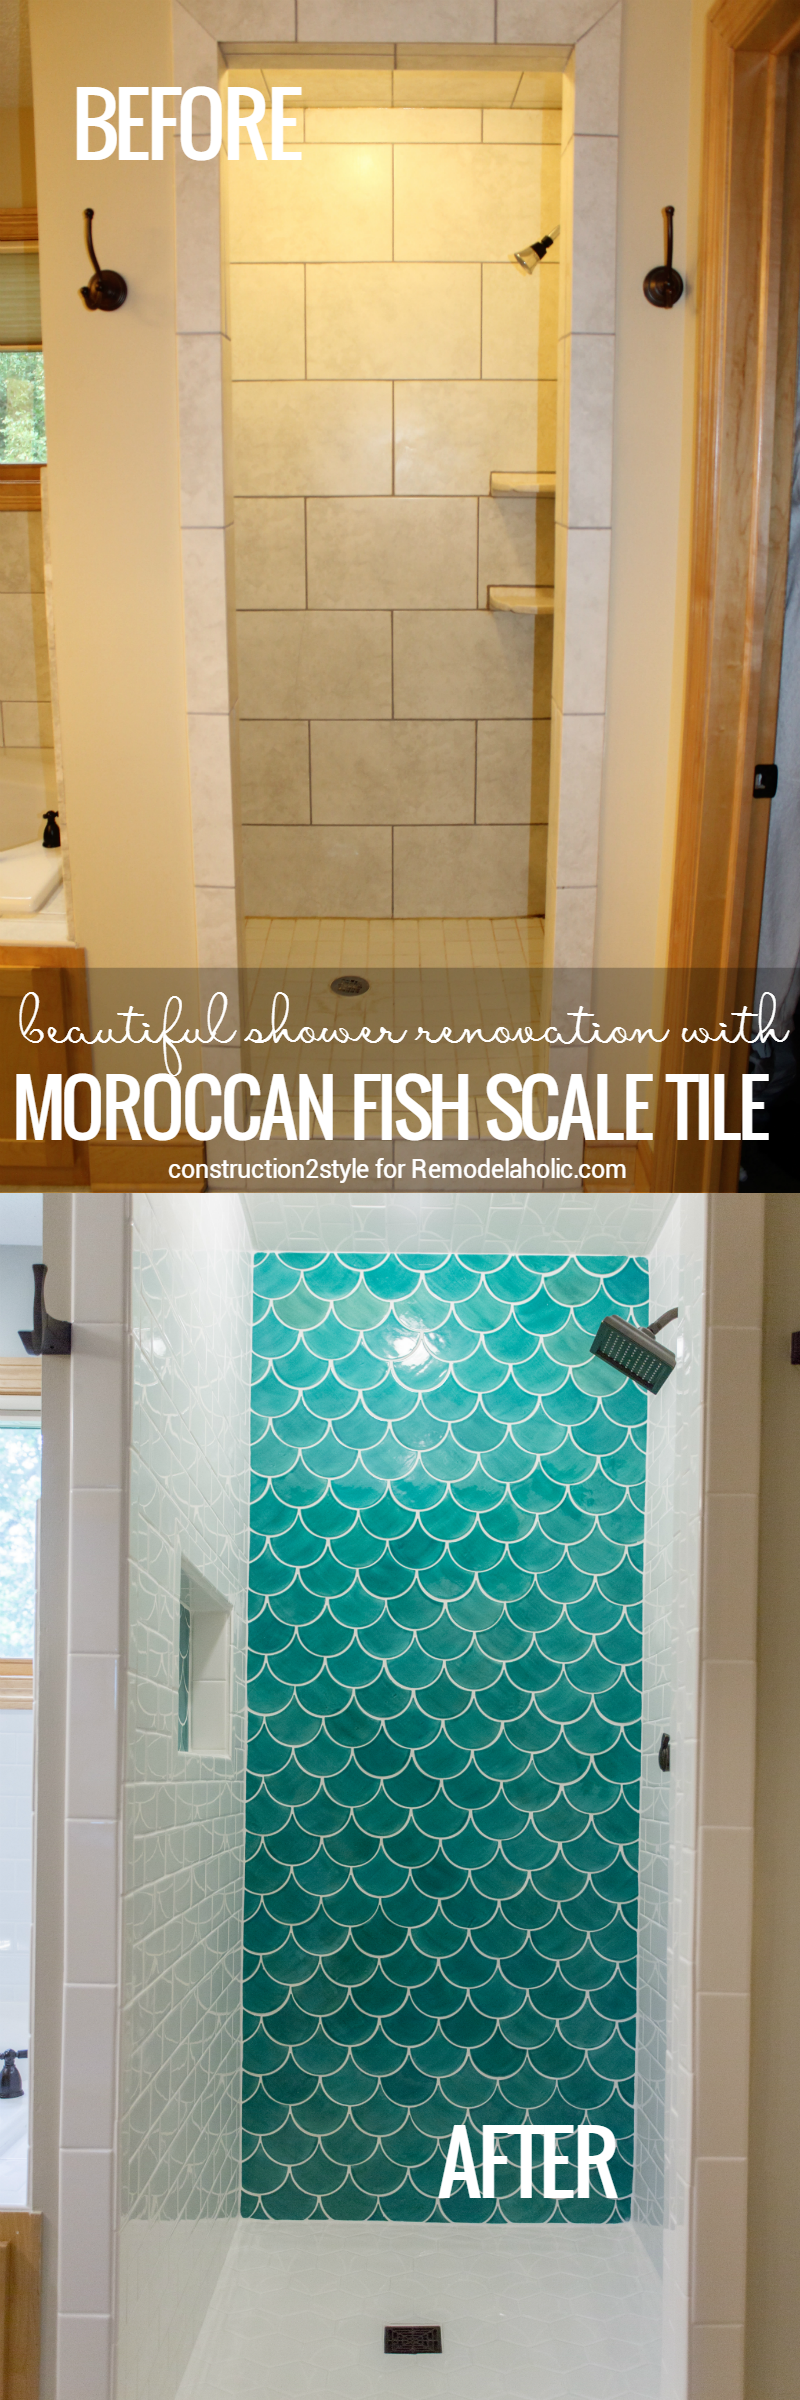 Remodelaholic How To Tile A Shower With Moroccan Fish